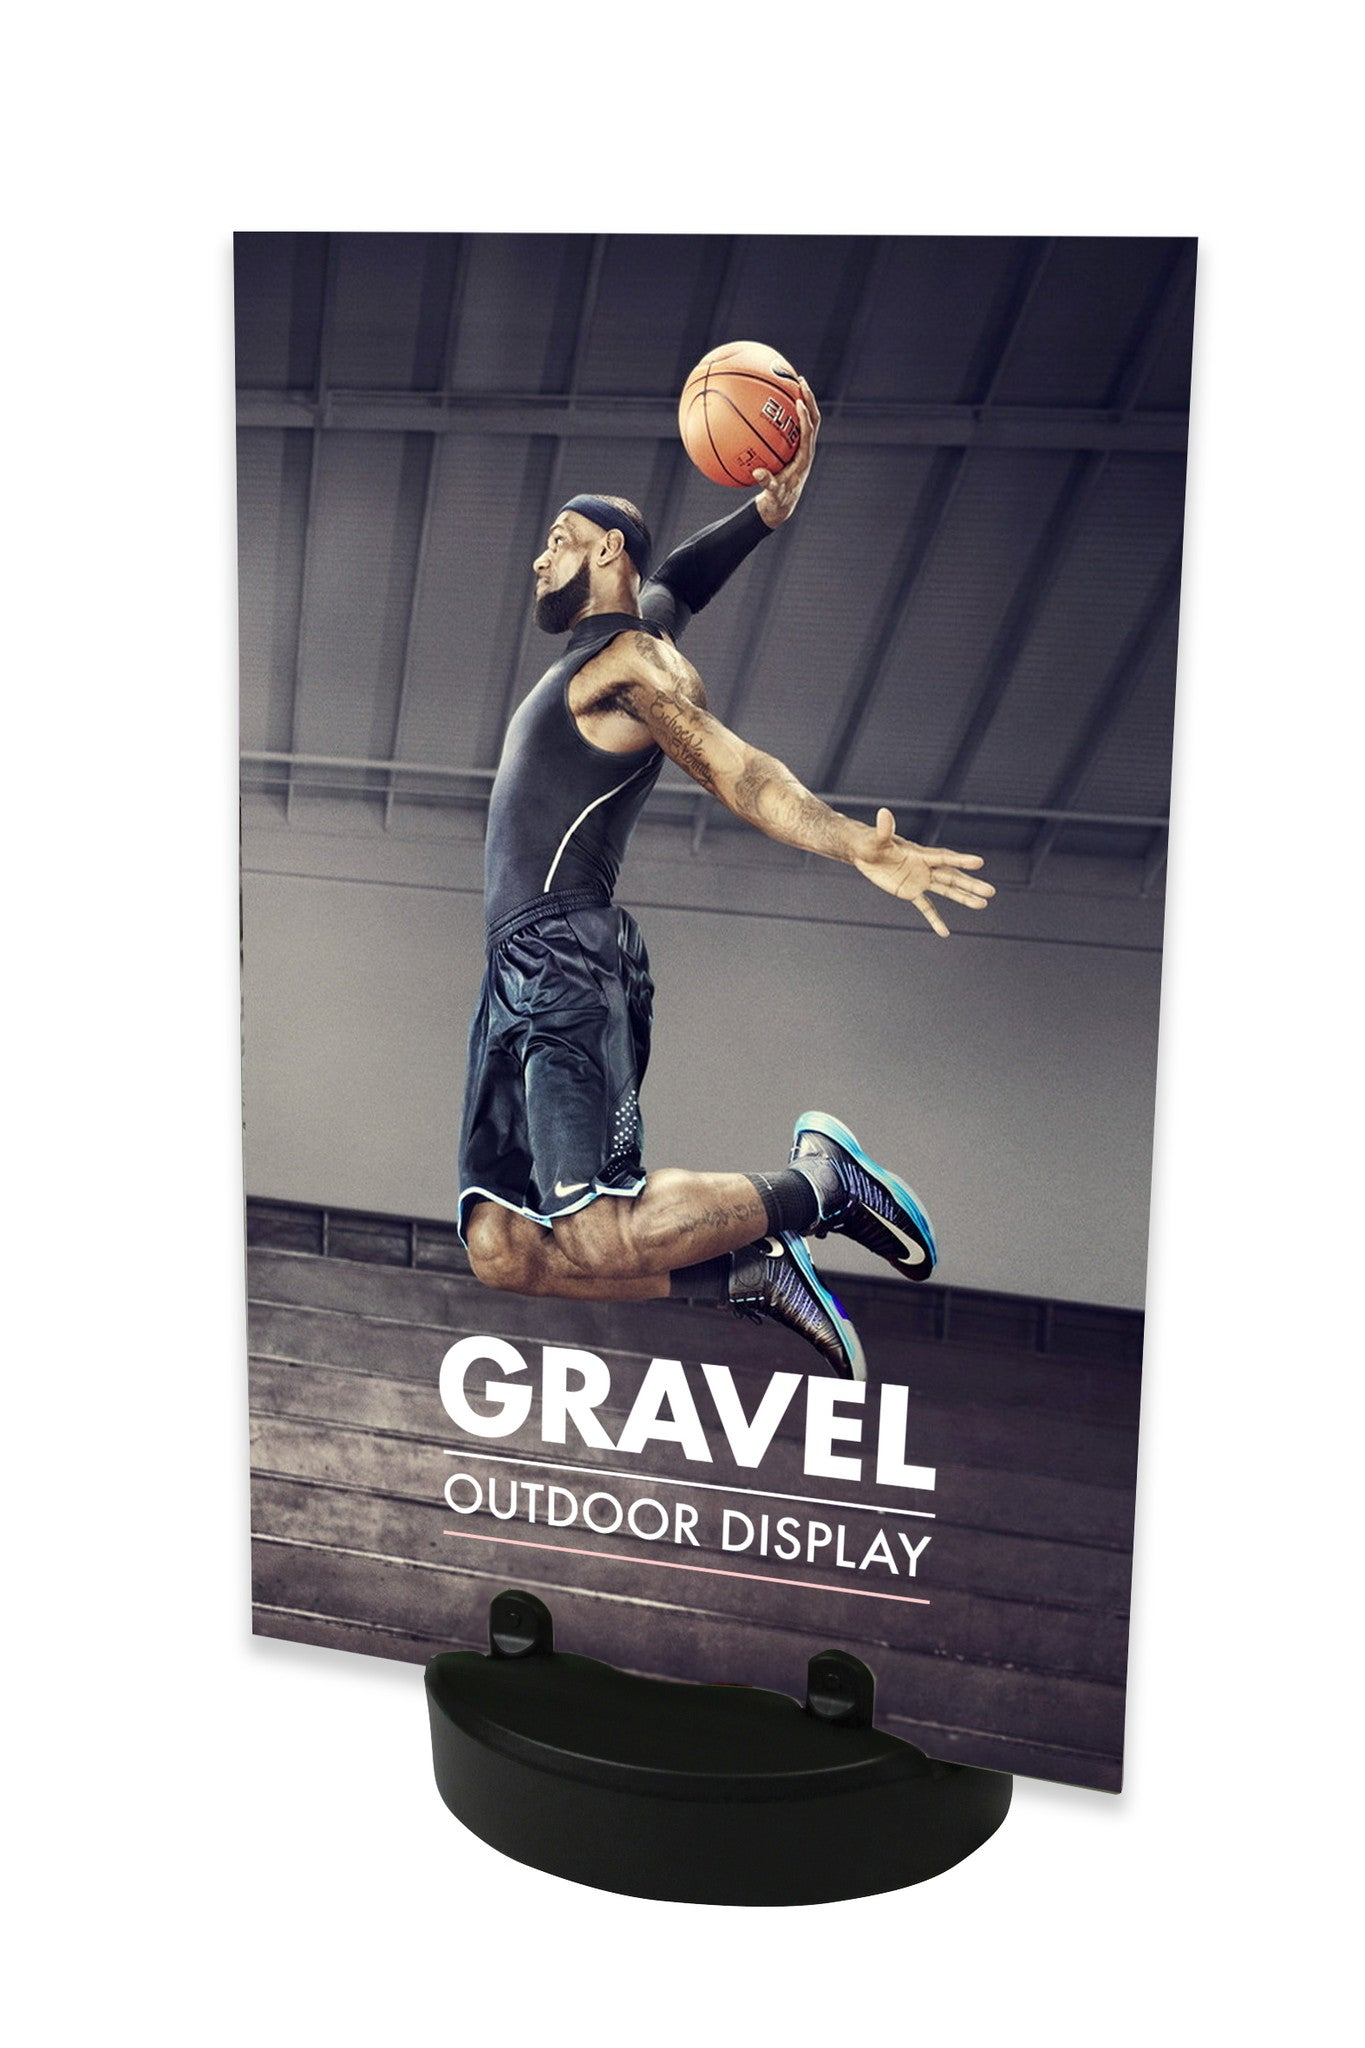 GRAVEL RIGID GRAPHIC PANEL STAND FOR OUTDOOR & INDOOR DISPLAY SIGNAGE